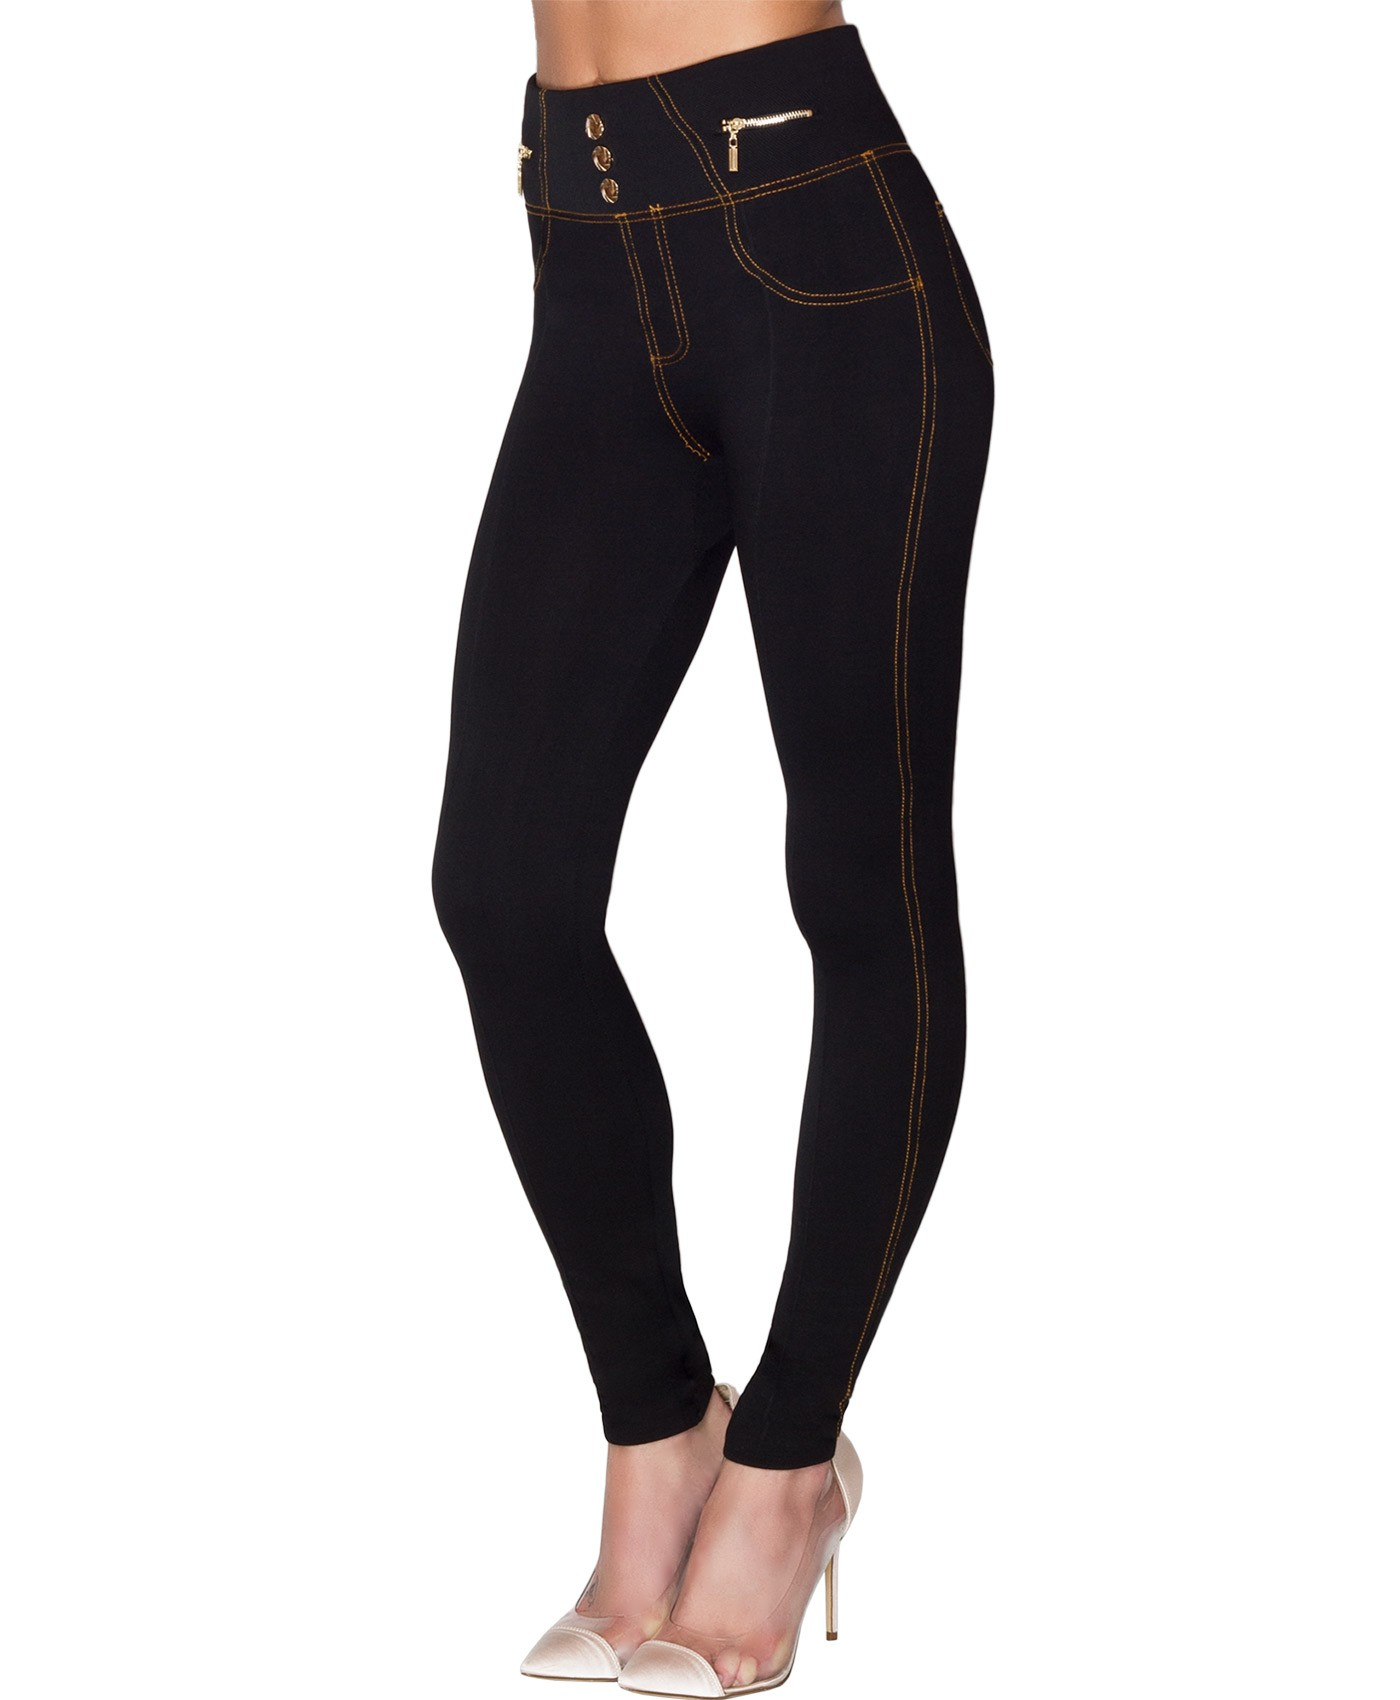 Black Gold Button Zip Fleece Lined Jeggings